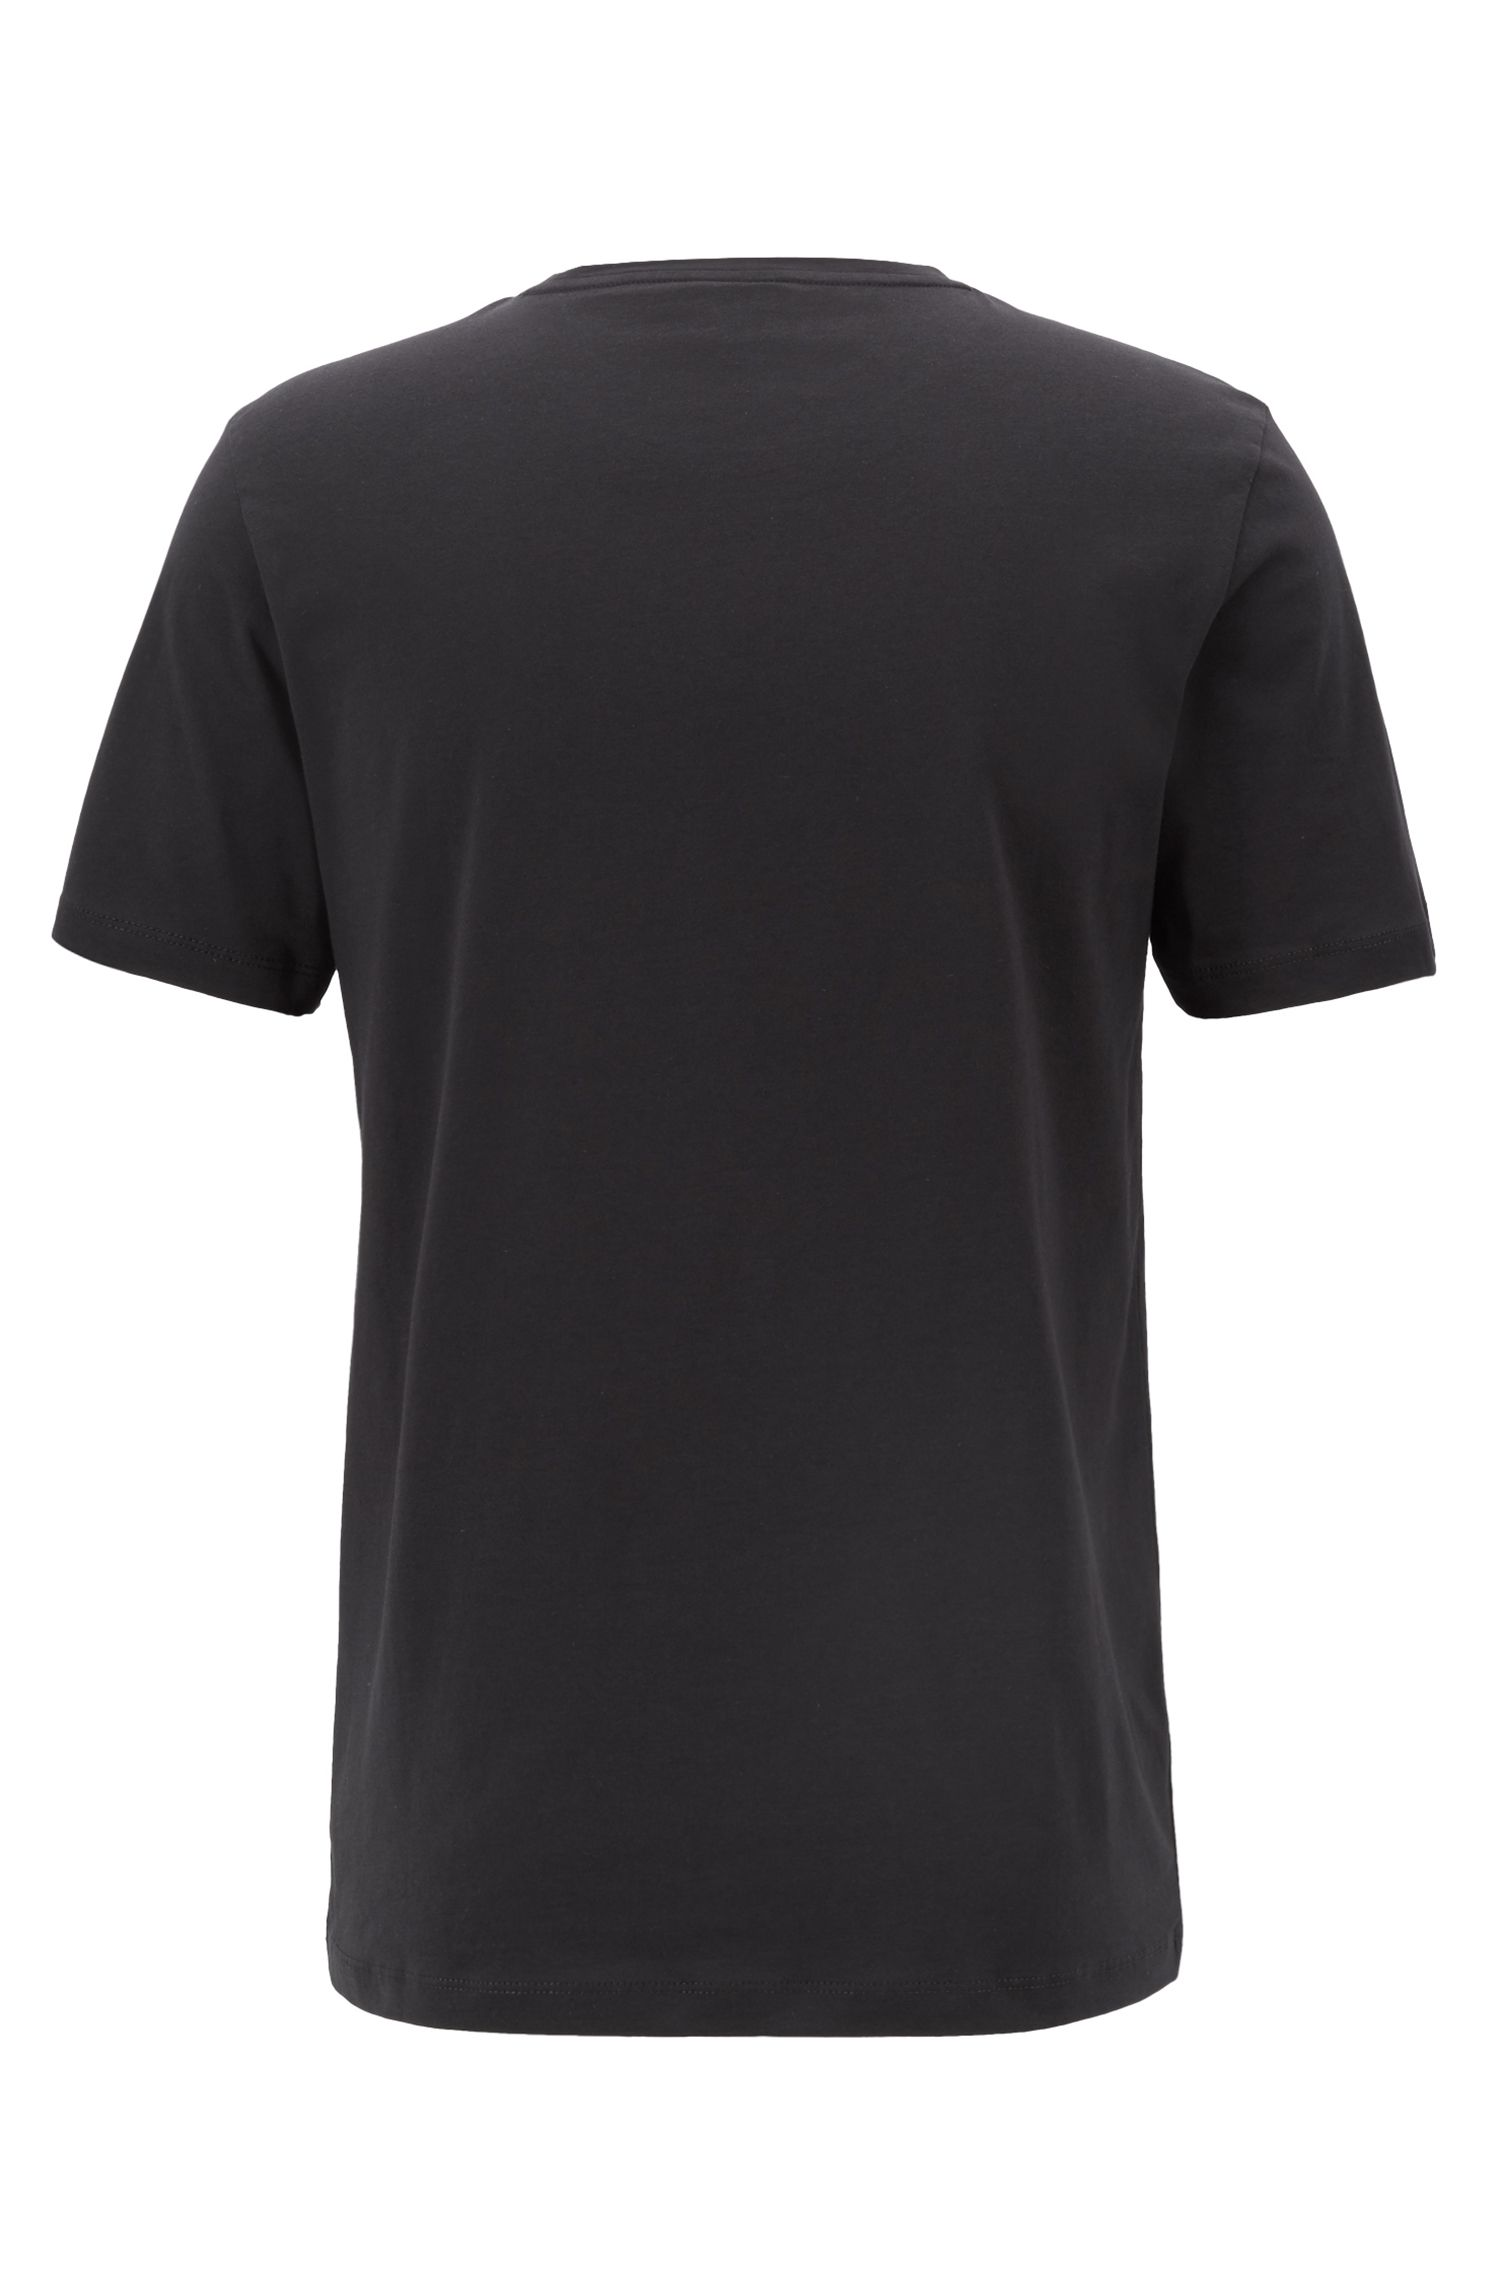 Crew-neck T-shirt in cotton with large logo print, Black